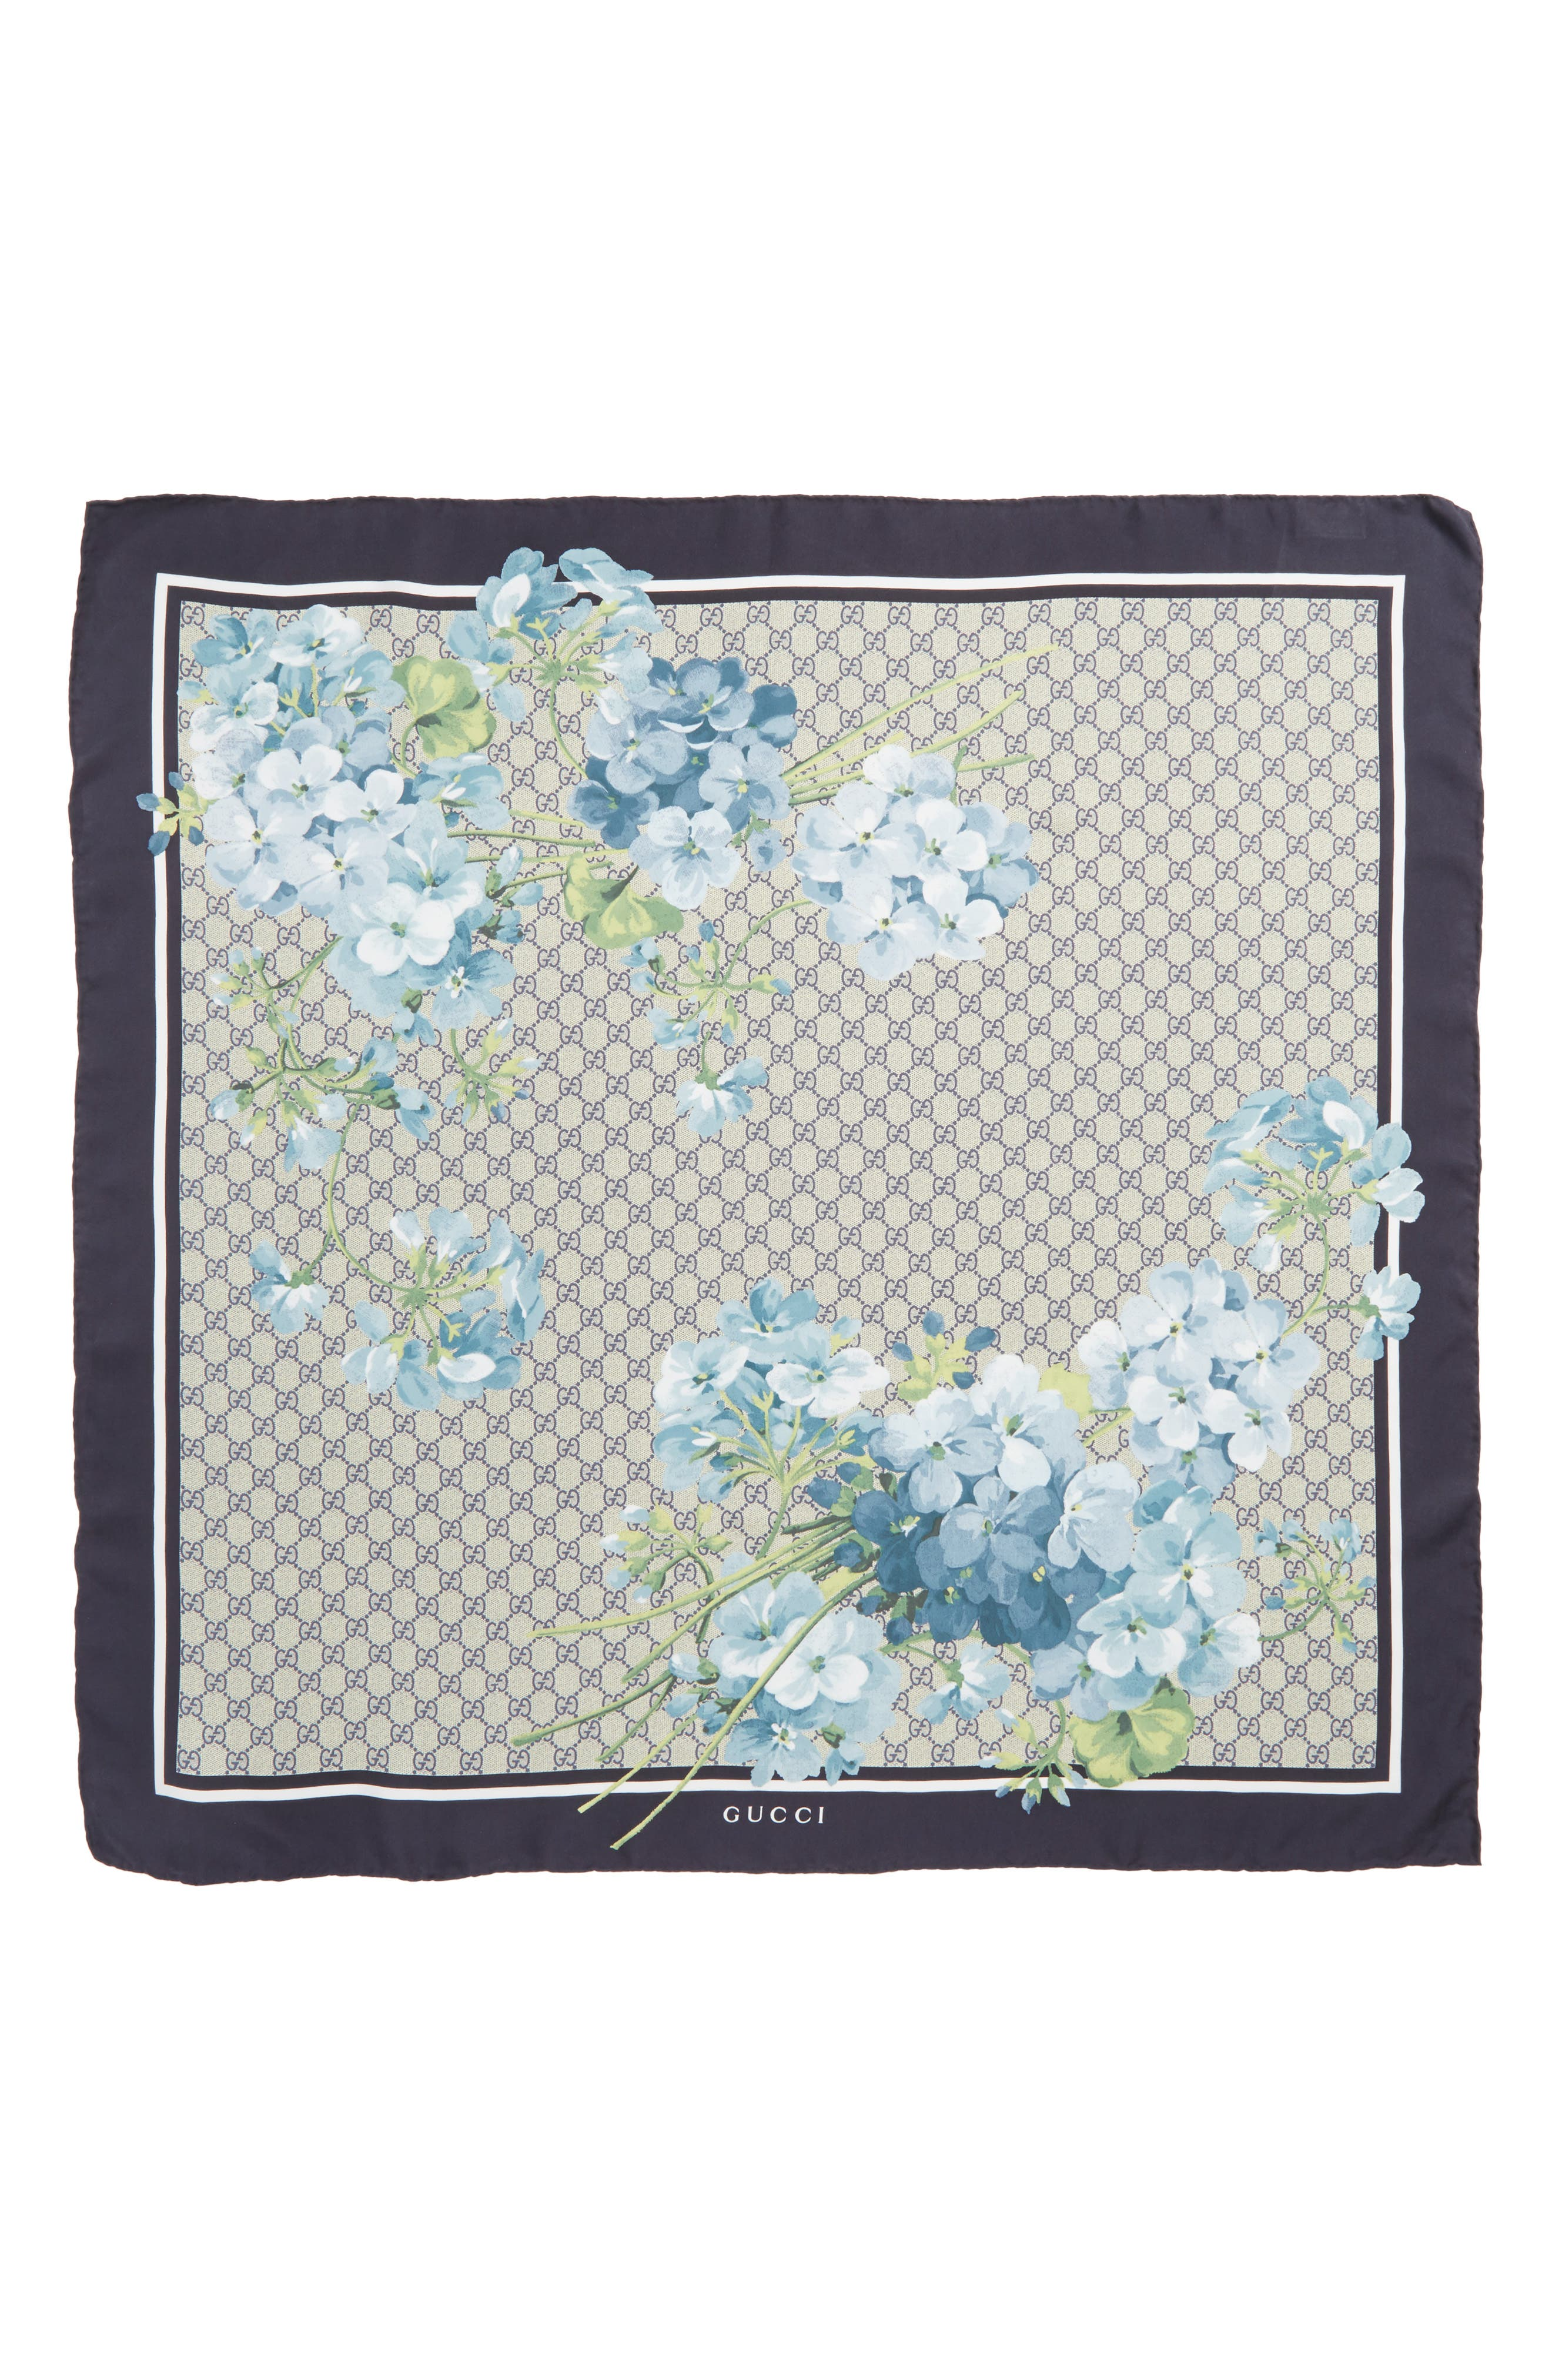 GG Blooms Foulard Scarf,                             Main thumbnail 1, color,                             Midnight Blue/Sky Blue